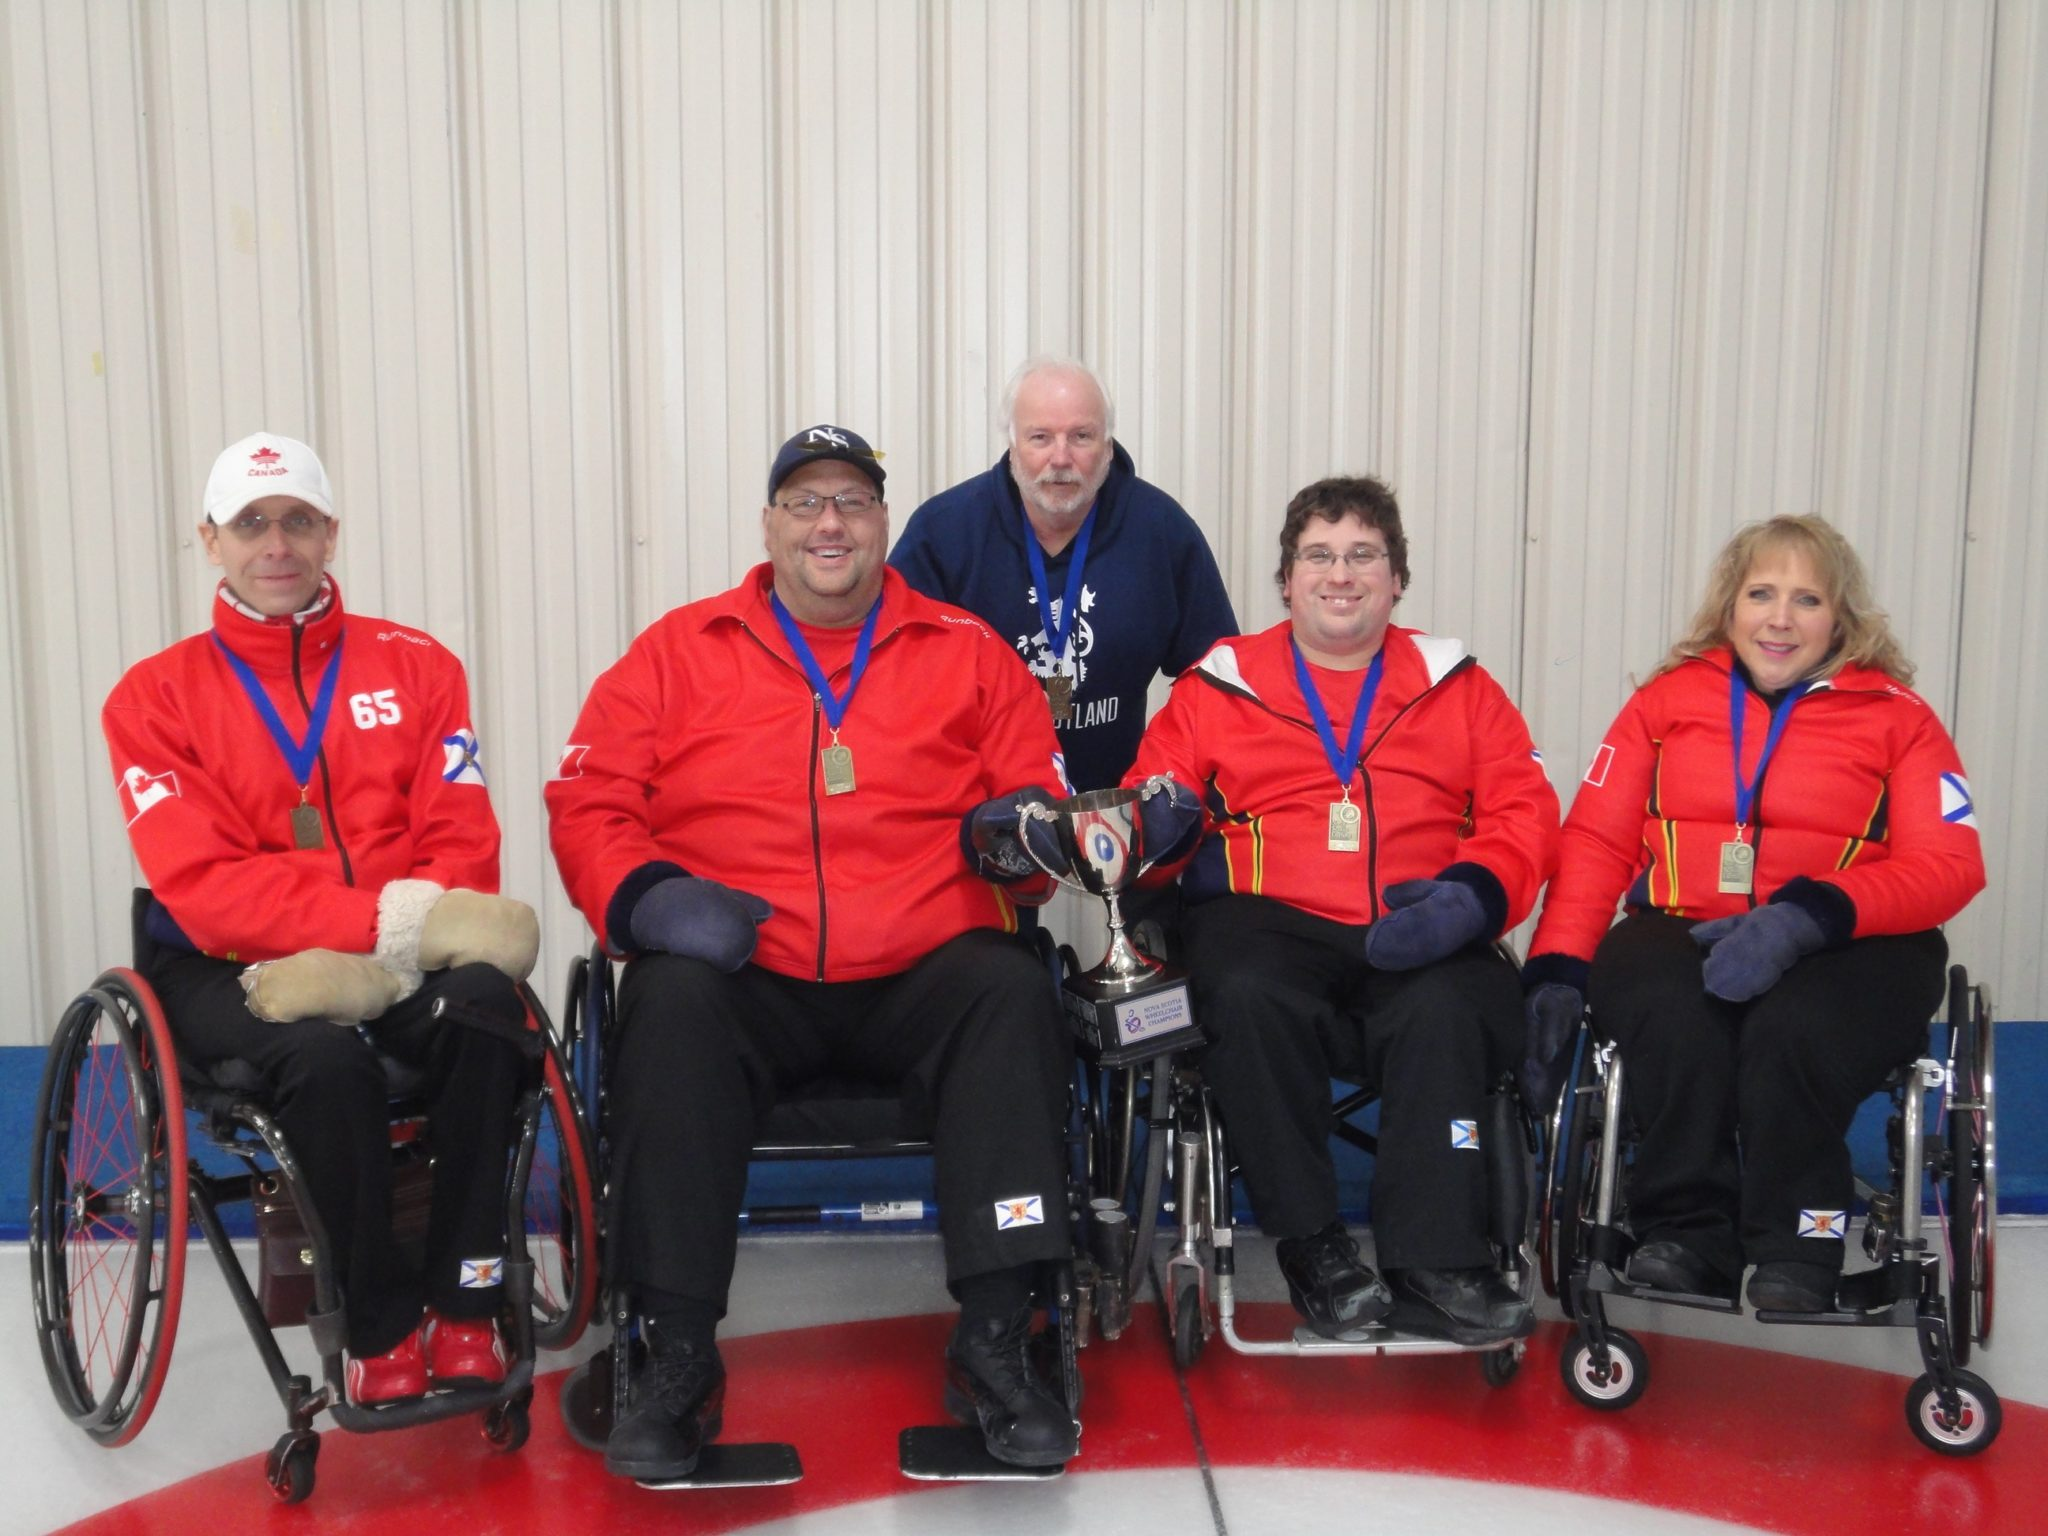 Team Hubley Bolivar - 2018 Harding Medical Wheelchair Champions